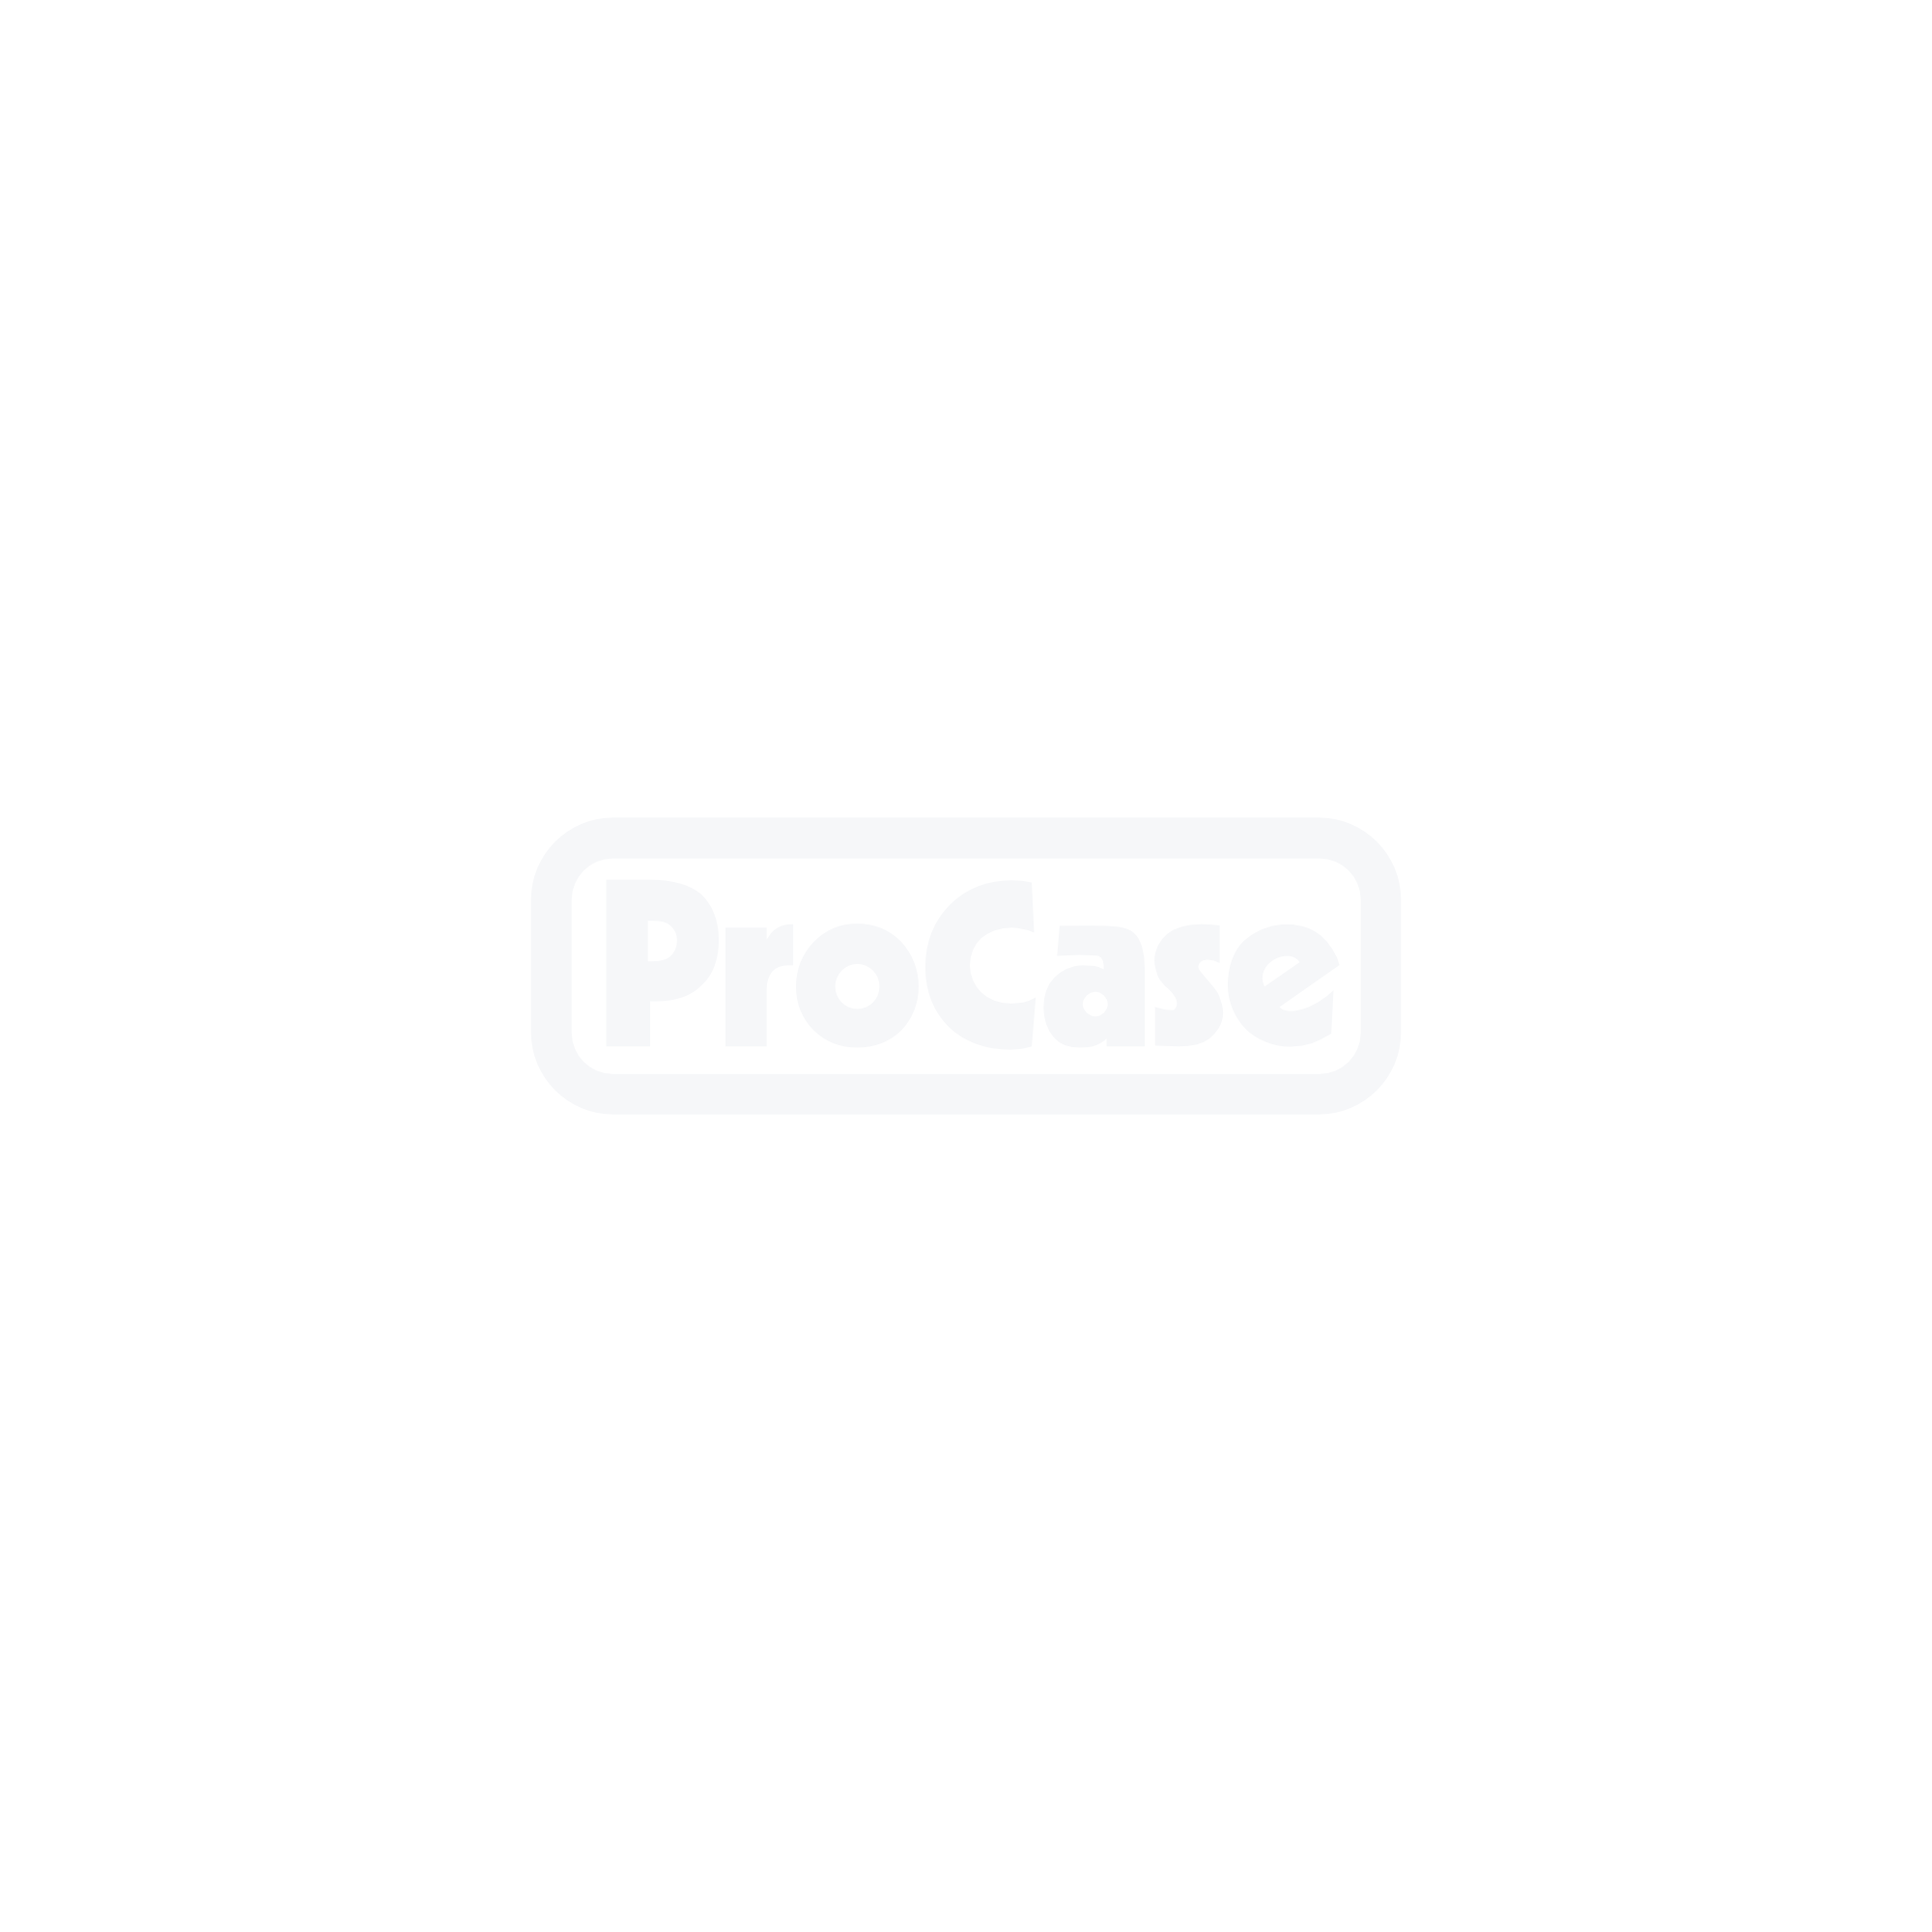 Essential-Rack 2HE 600 tief